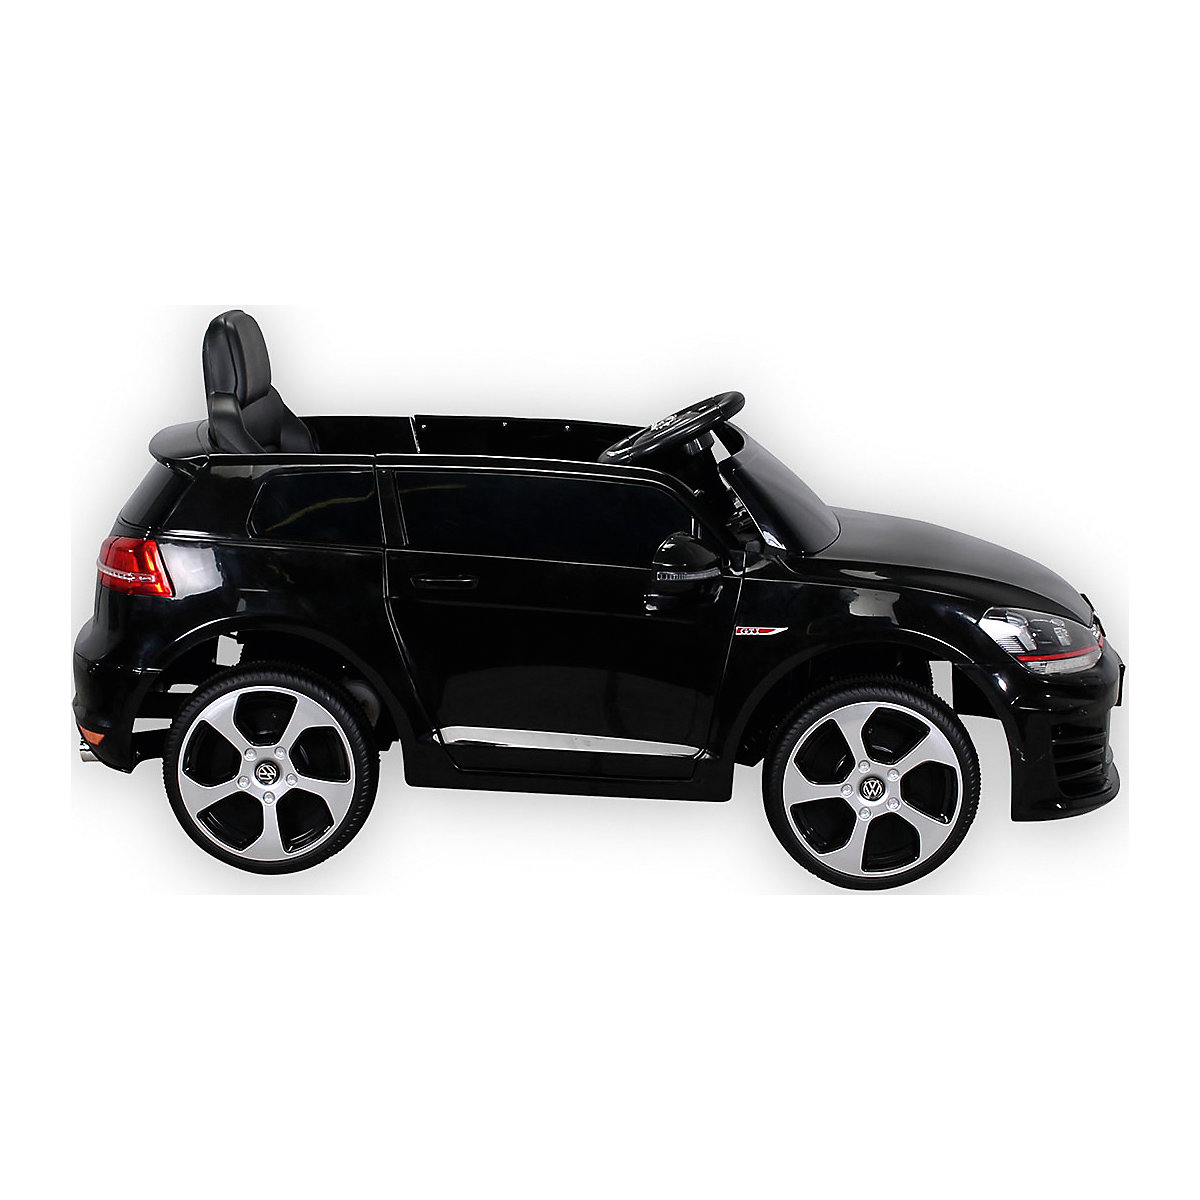 kinder elektroauto vw golf lizenziert schwarz mytoys. Black Bedroom Furniture Sets. Home Design Ideas